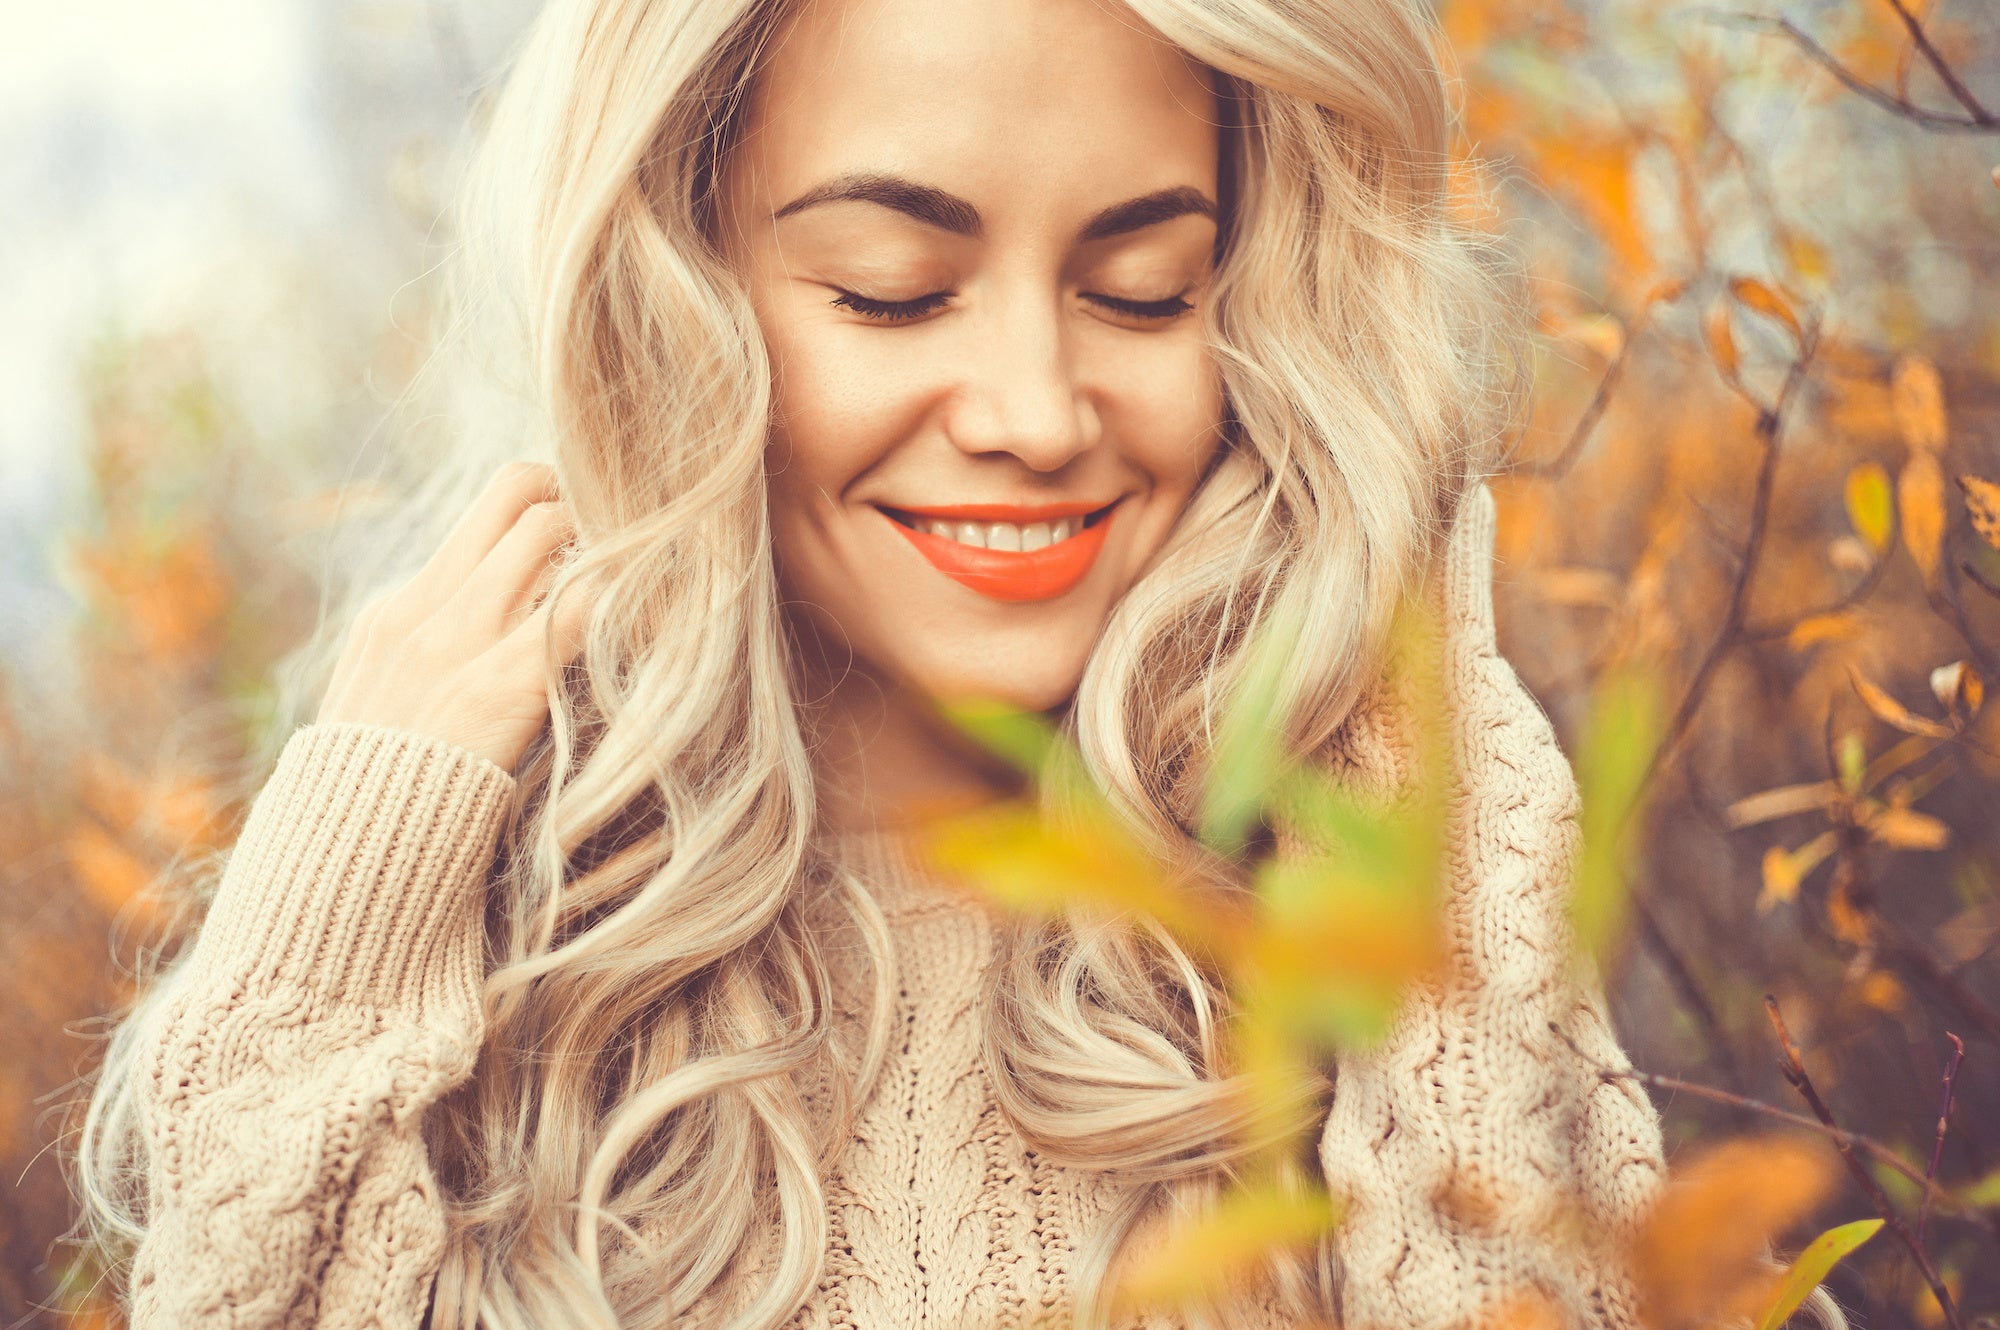 3 Ways to Care for Your Lips This Fall